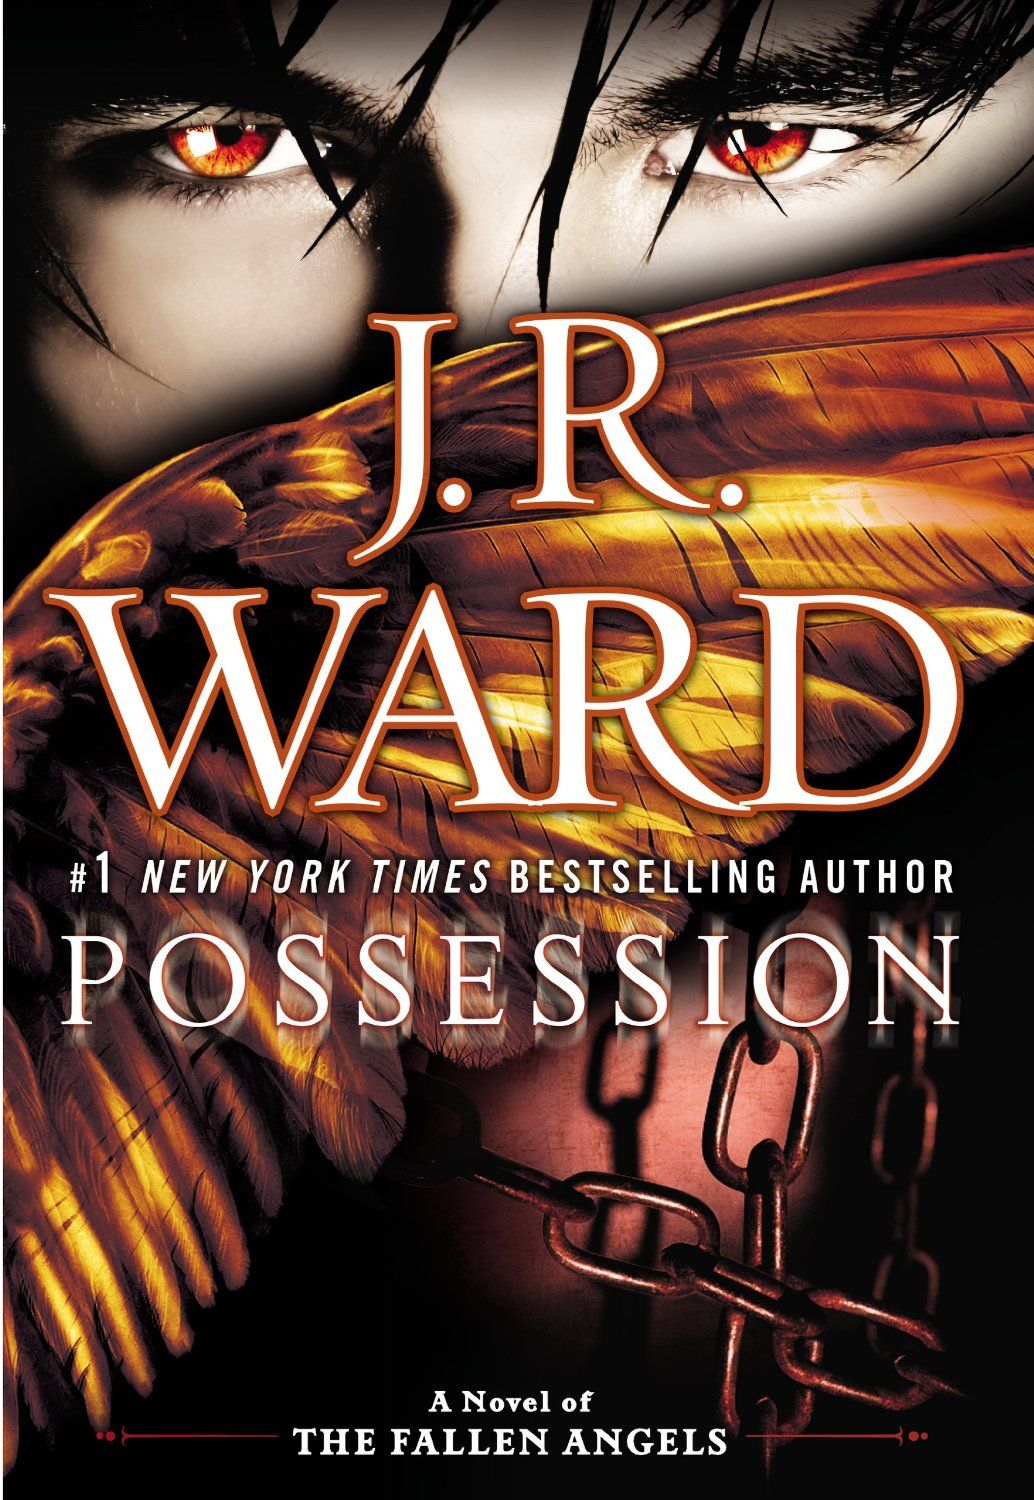 Possession: A Novel of the Fallen Angels by J.R. Ward [October 1, 2013]